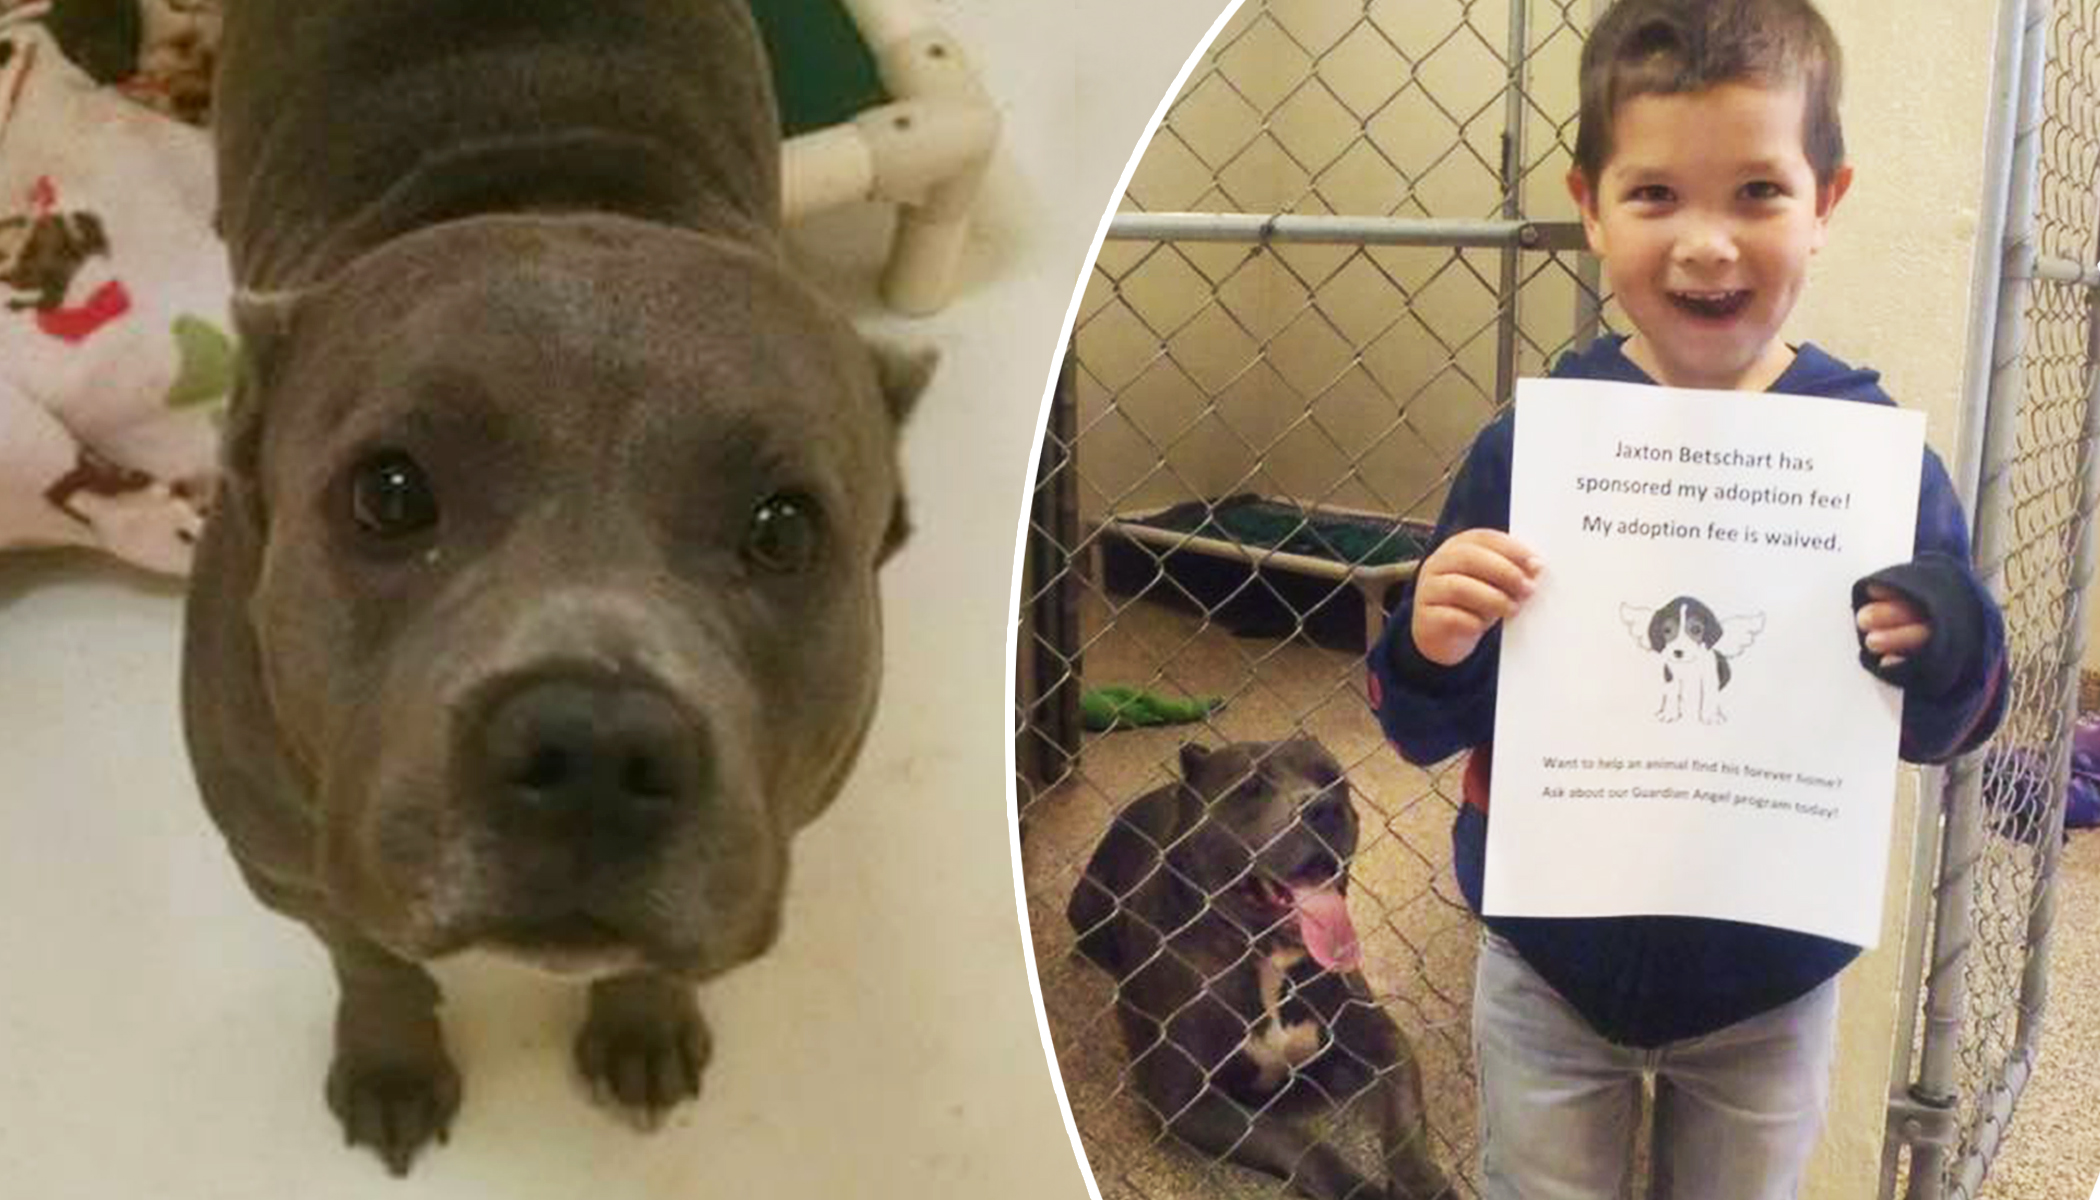 4-Year-Old Learns He Can't Adopt Pit Bulls, So He Comes Up With a Brilliant Idea